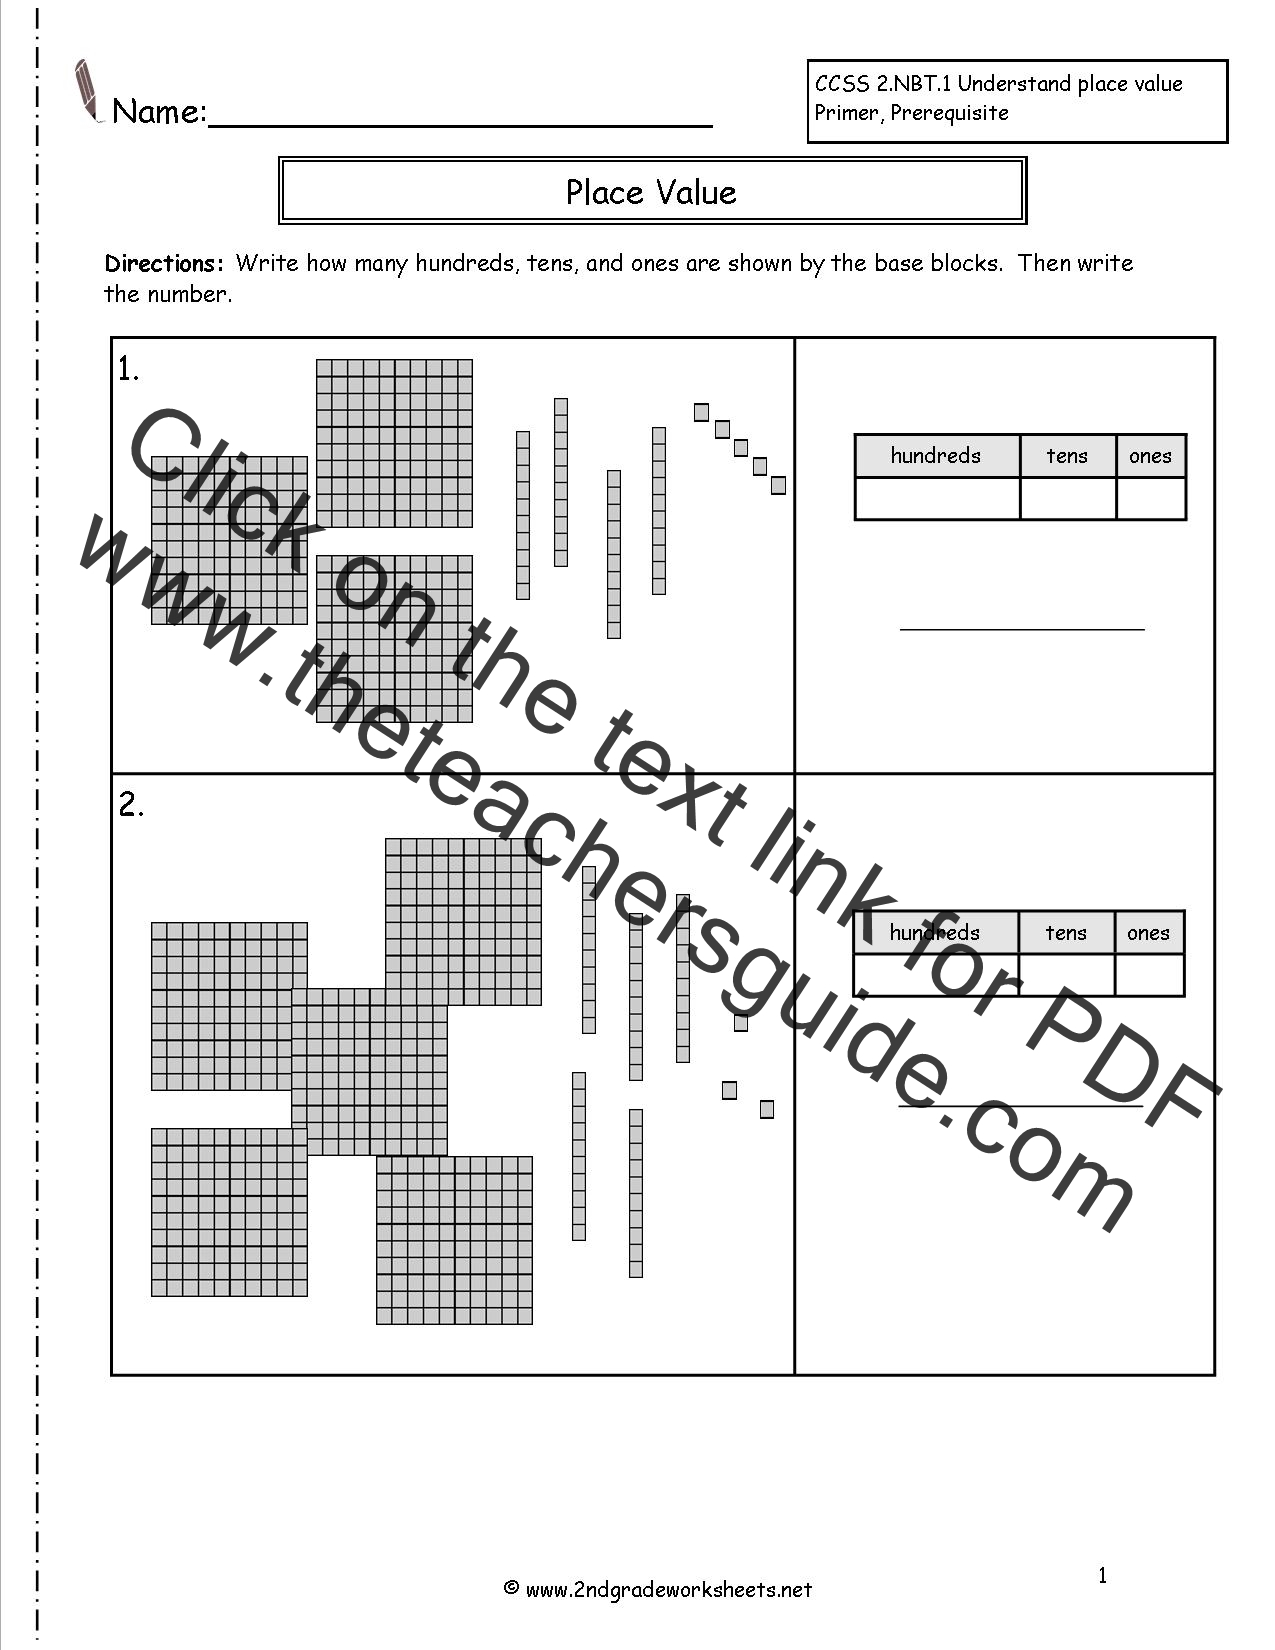 Base Ten Blocks Worksheets Free Worksheets Library – Number and Operations in Base Ten Worksheets